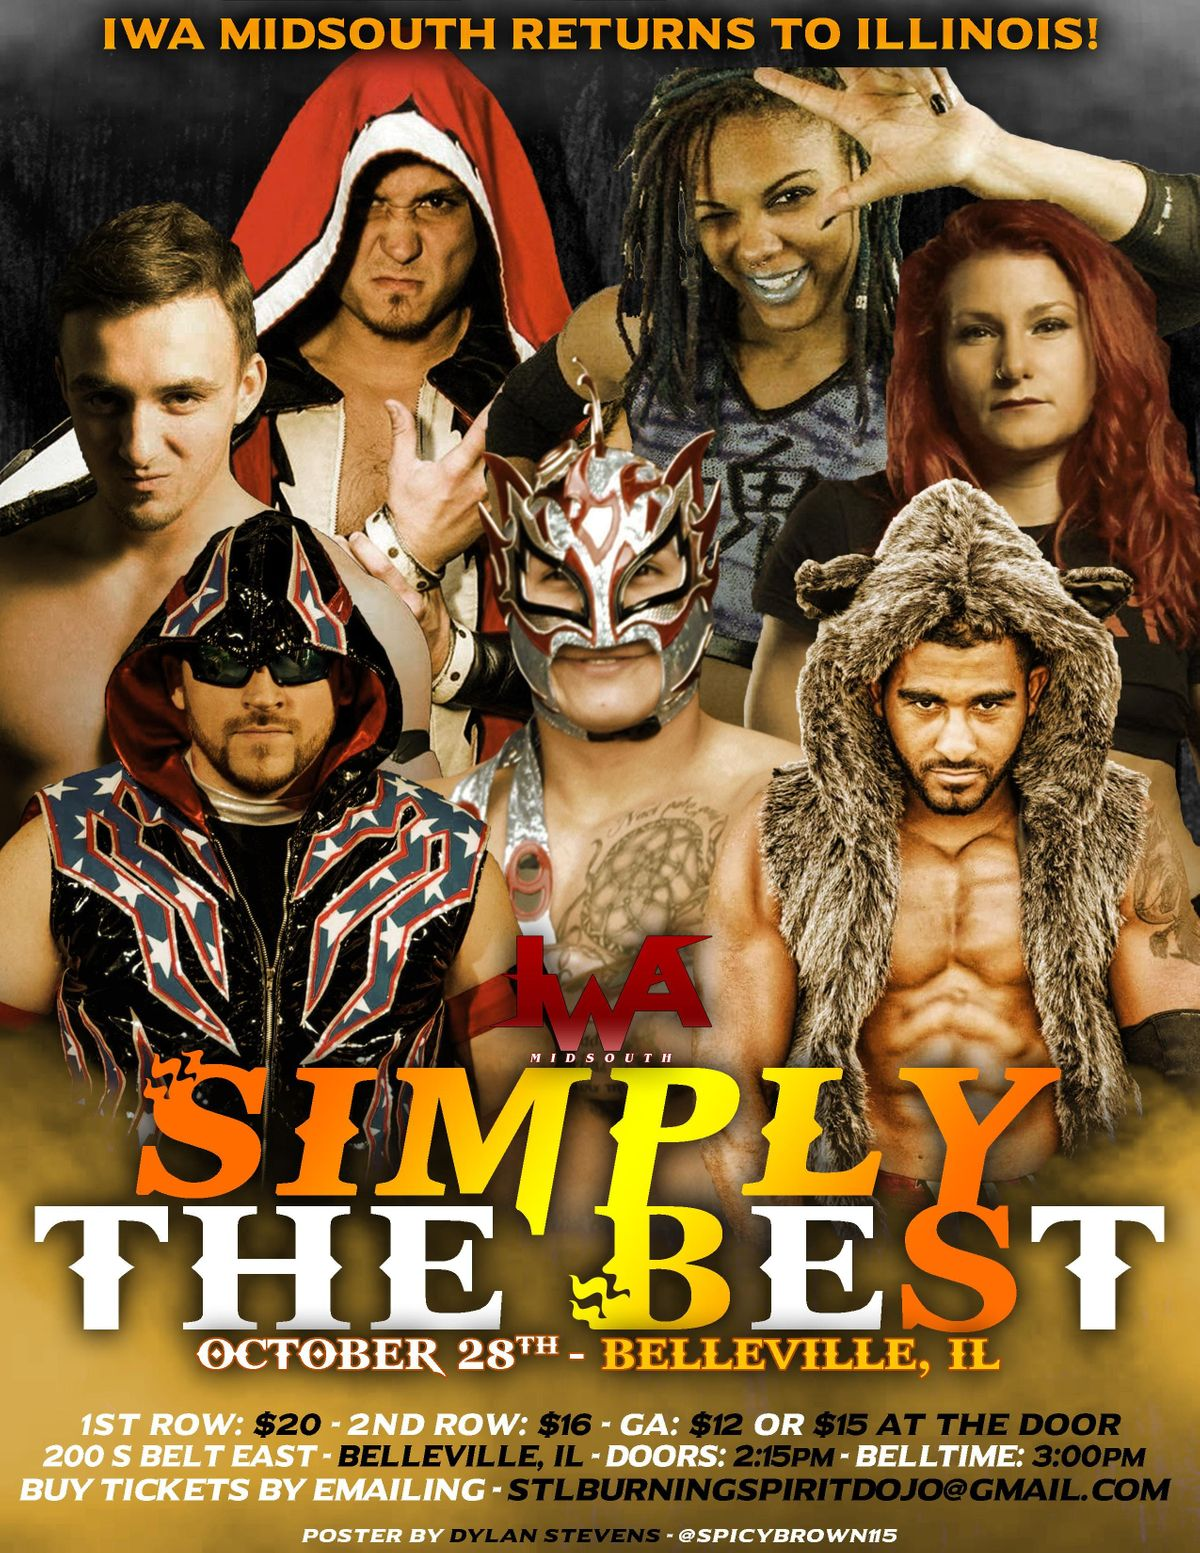 IWA-MS Simply the Best